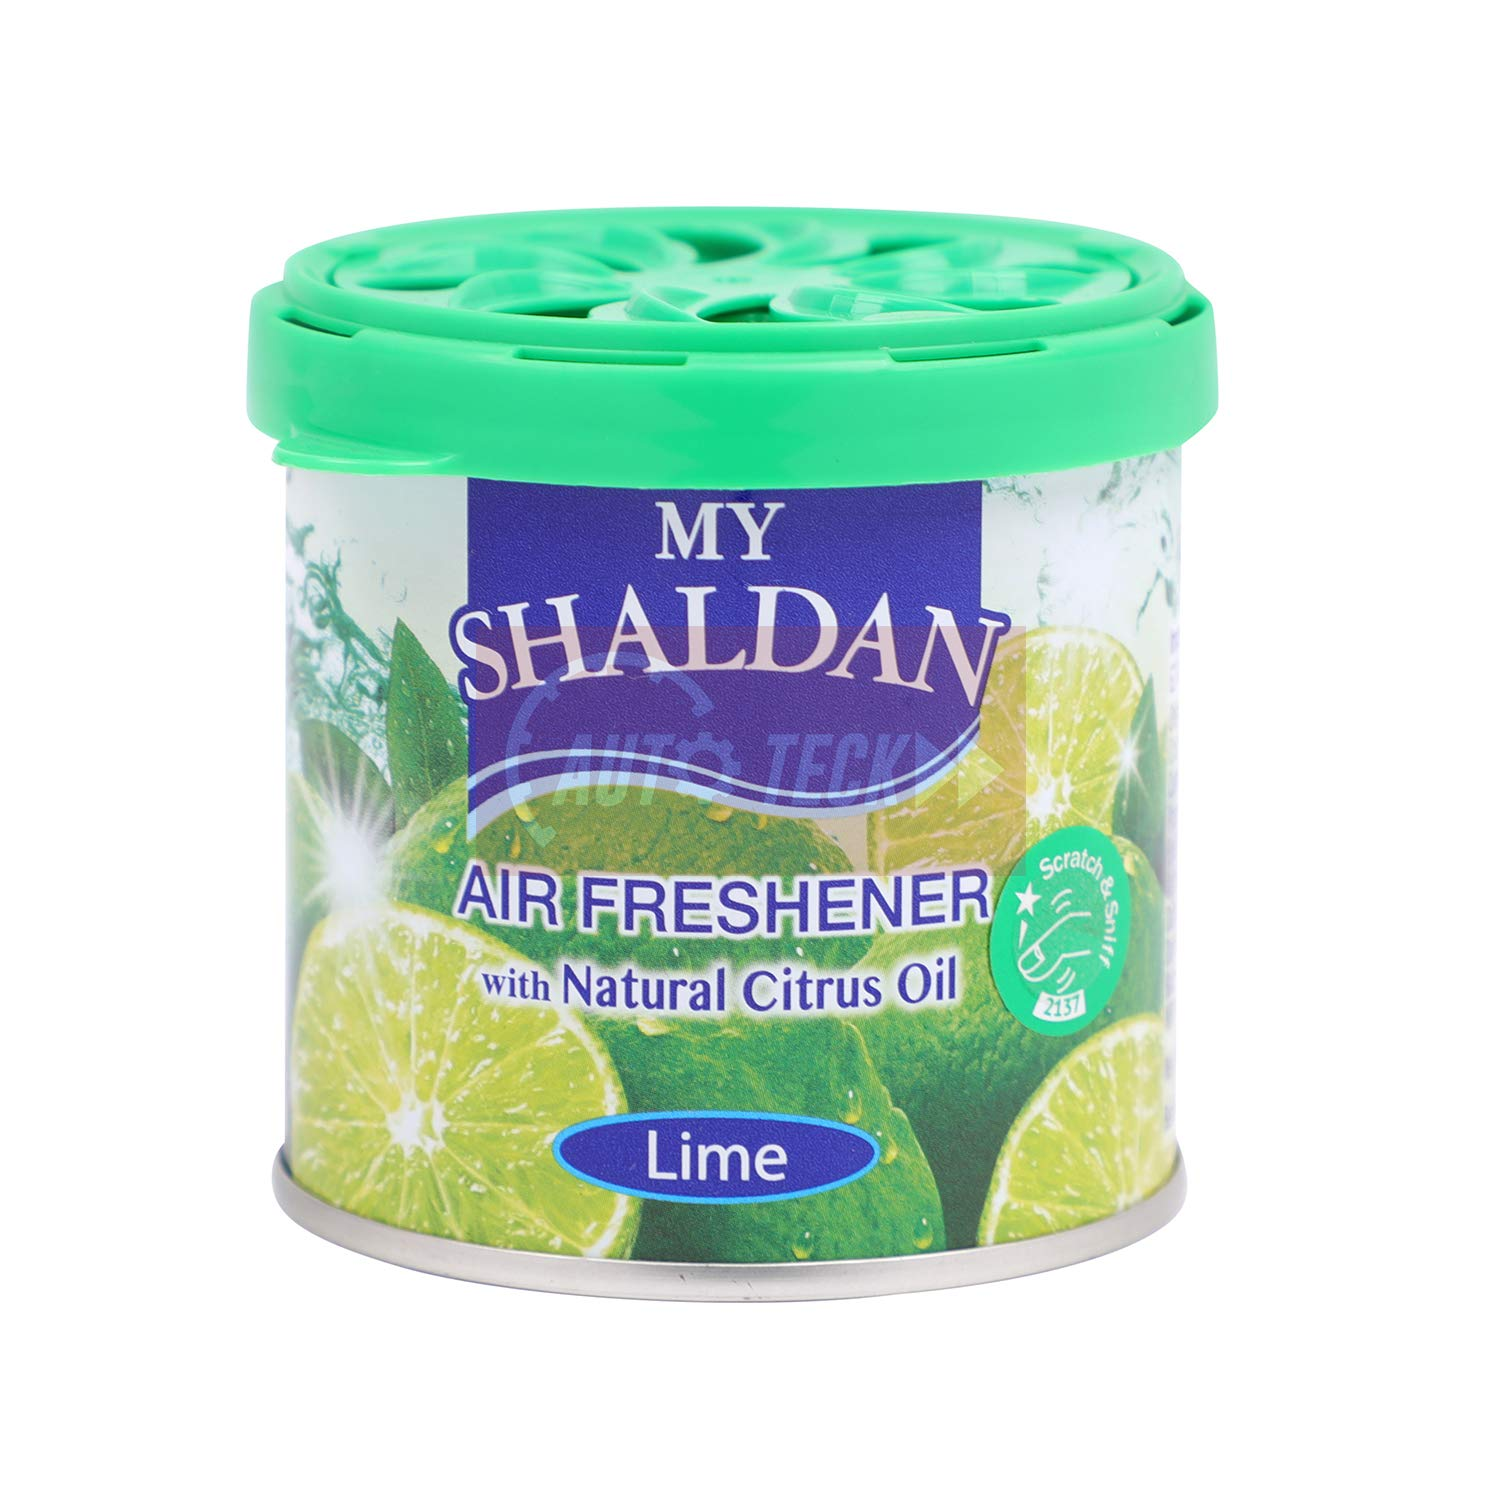 My Shaldan Lime Car Air Freshener